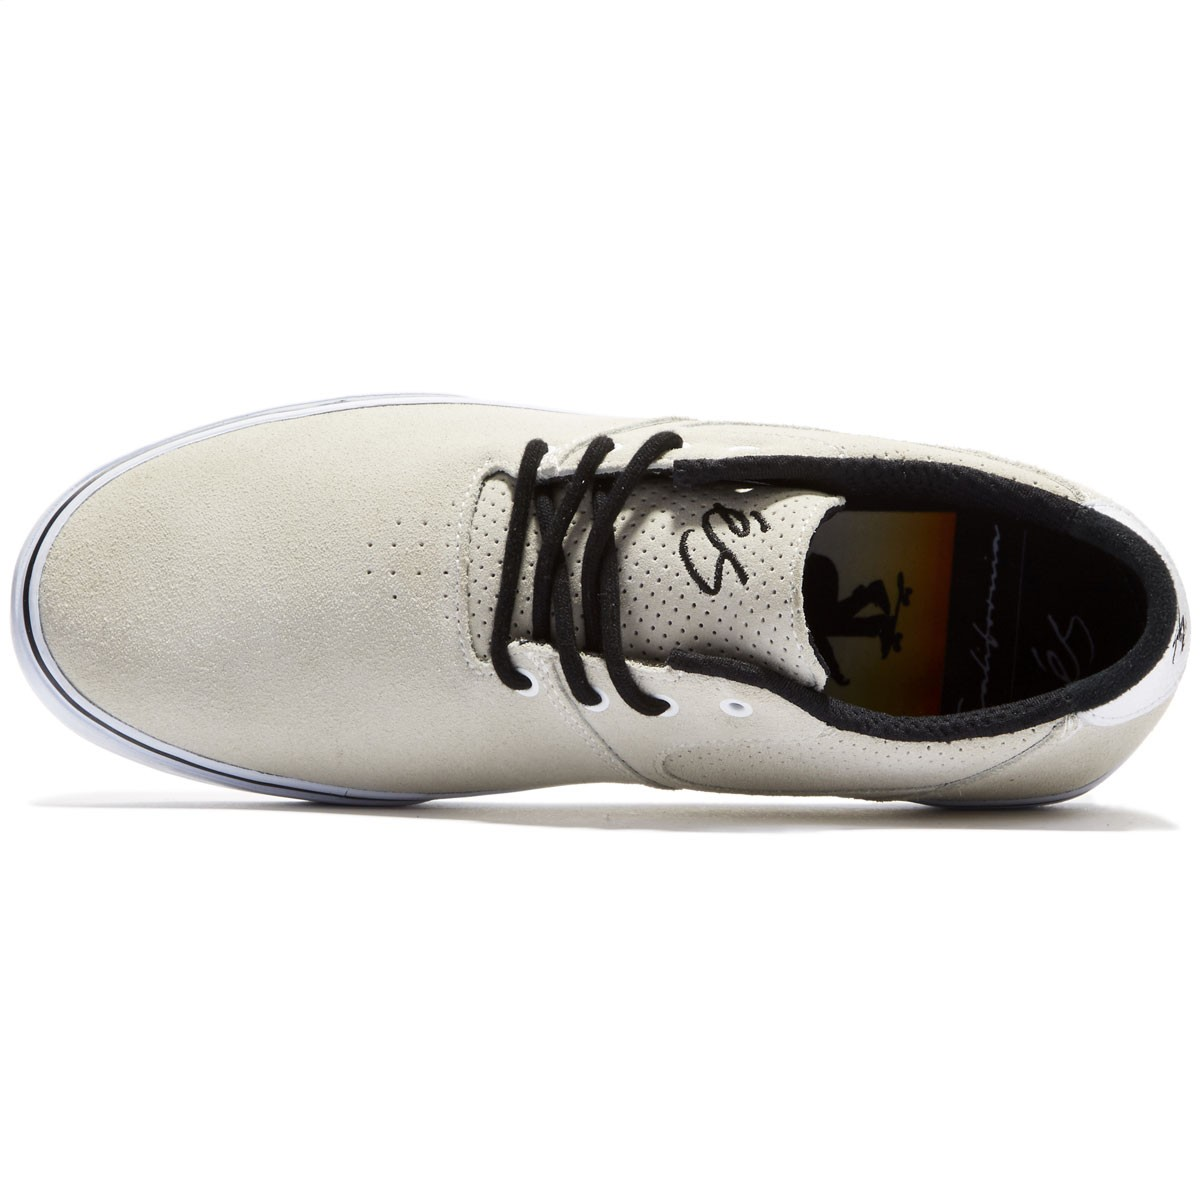 eS Shoes Accel SQ White White Black FREE POST New Footwear Skateboard Sneakers